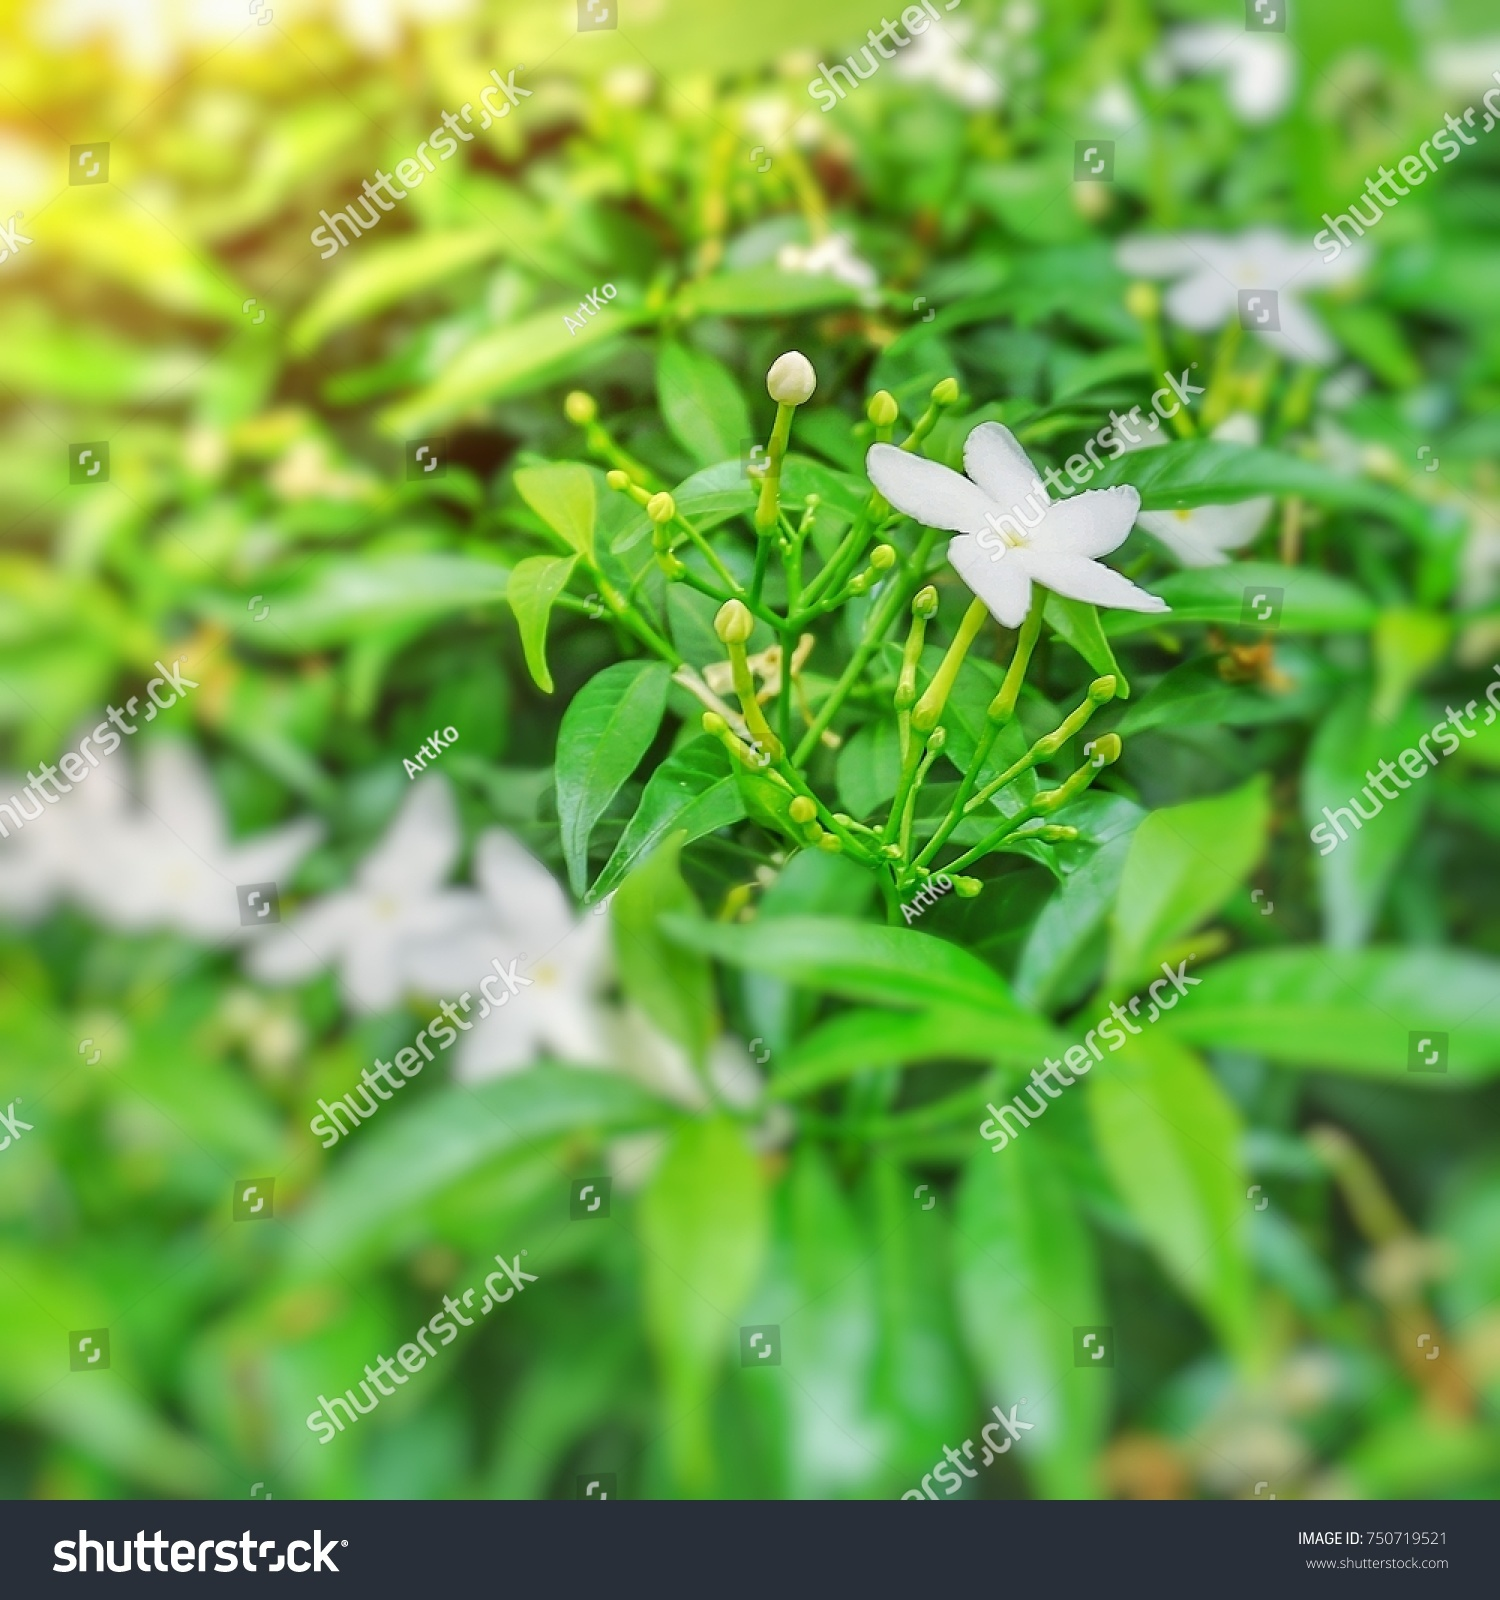 White Flowering Shrubs Shown Blooming And Flower Buds With Green